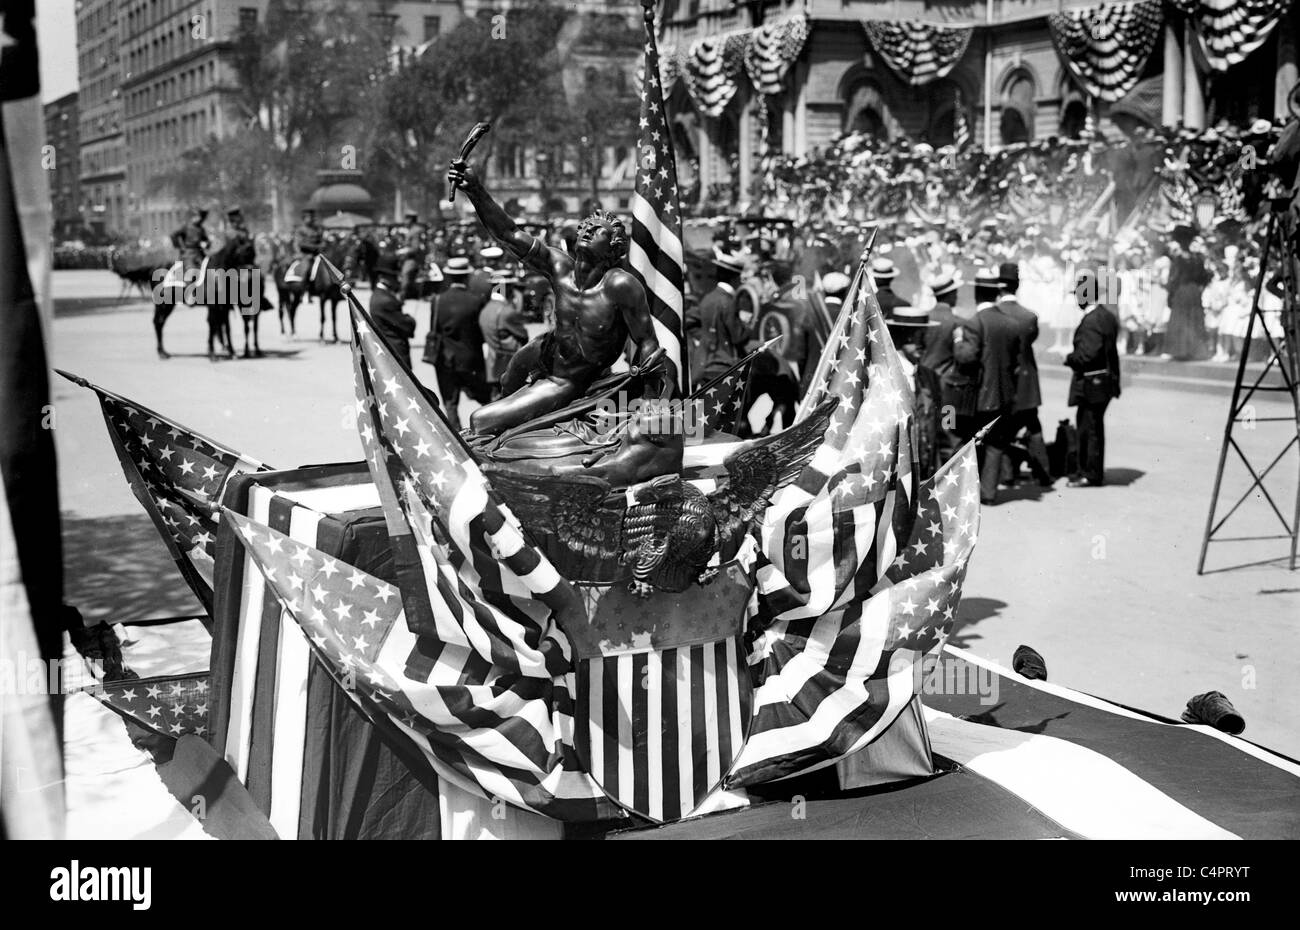 Olympic Athlete's Reception, Marathon trophy, New York. 1908 - Stock Image